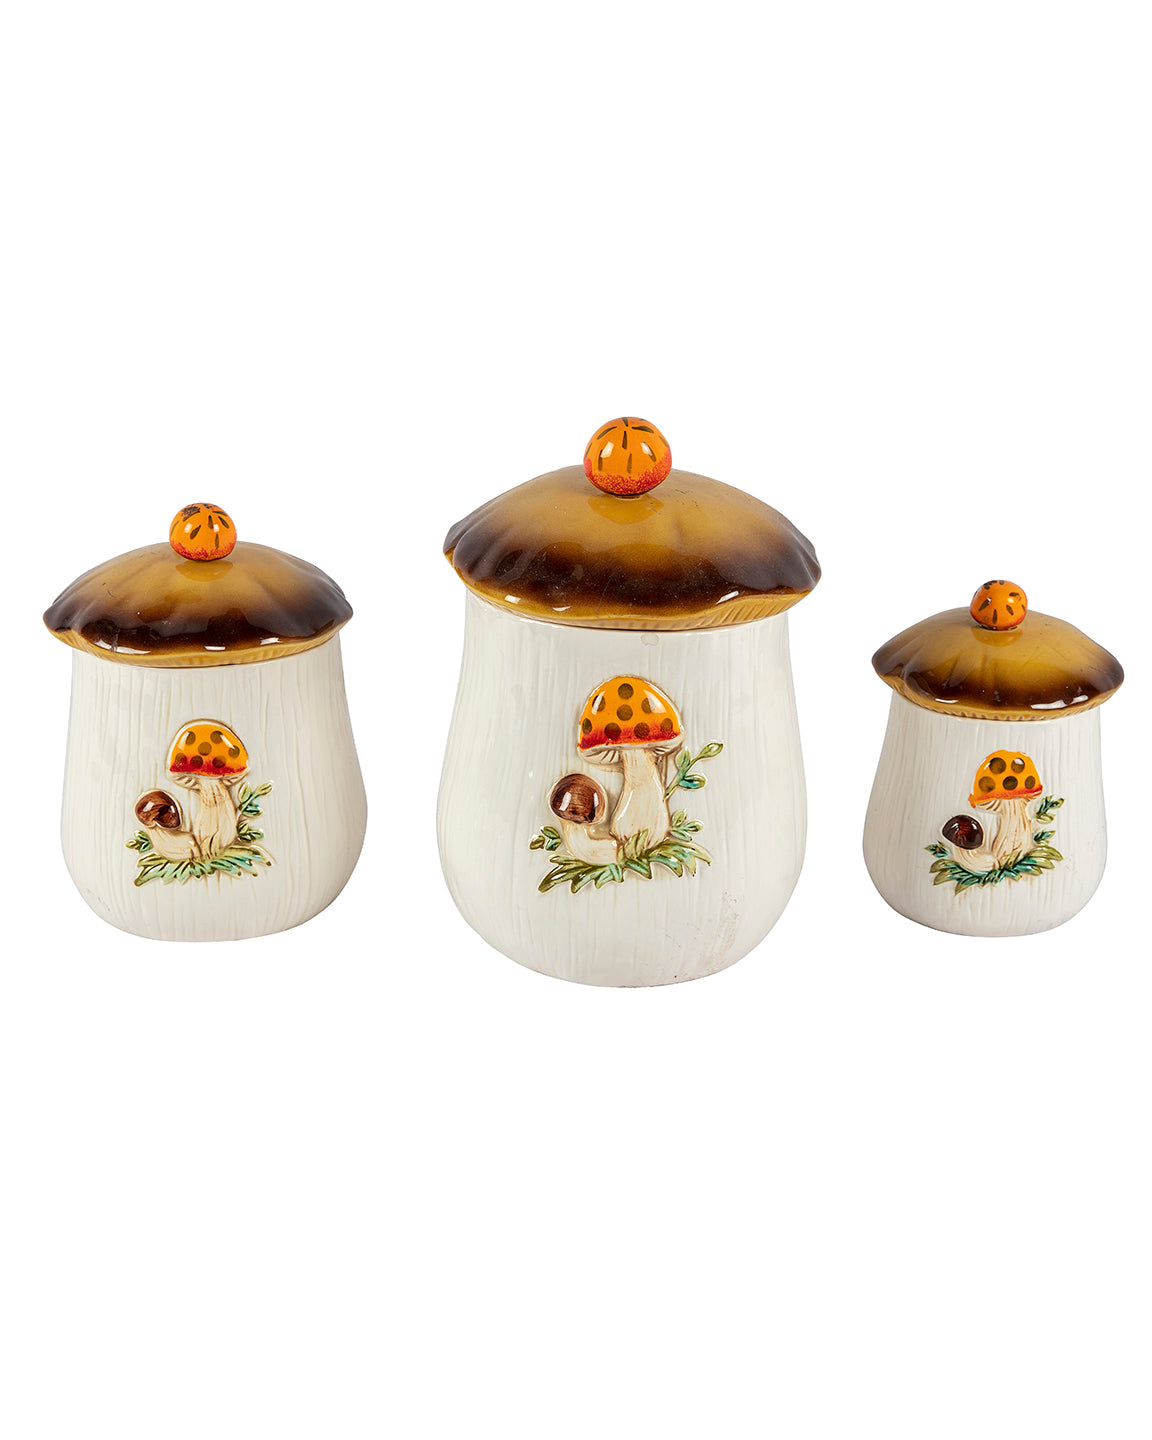 Mushroom themed set of ceramic jars